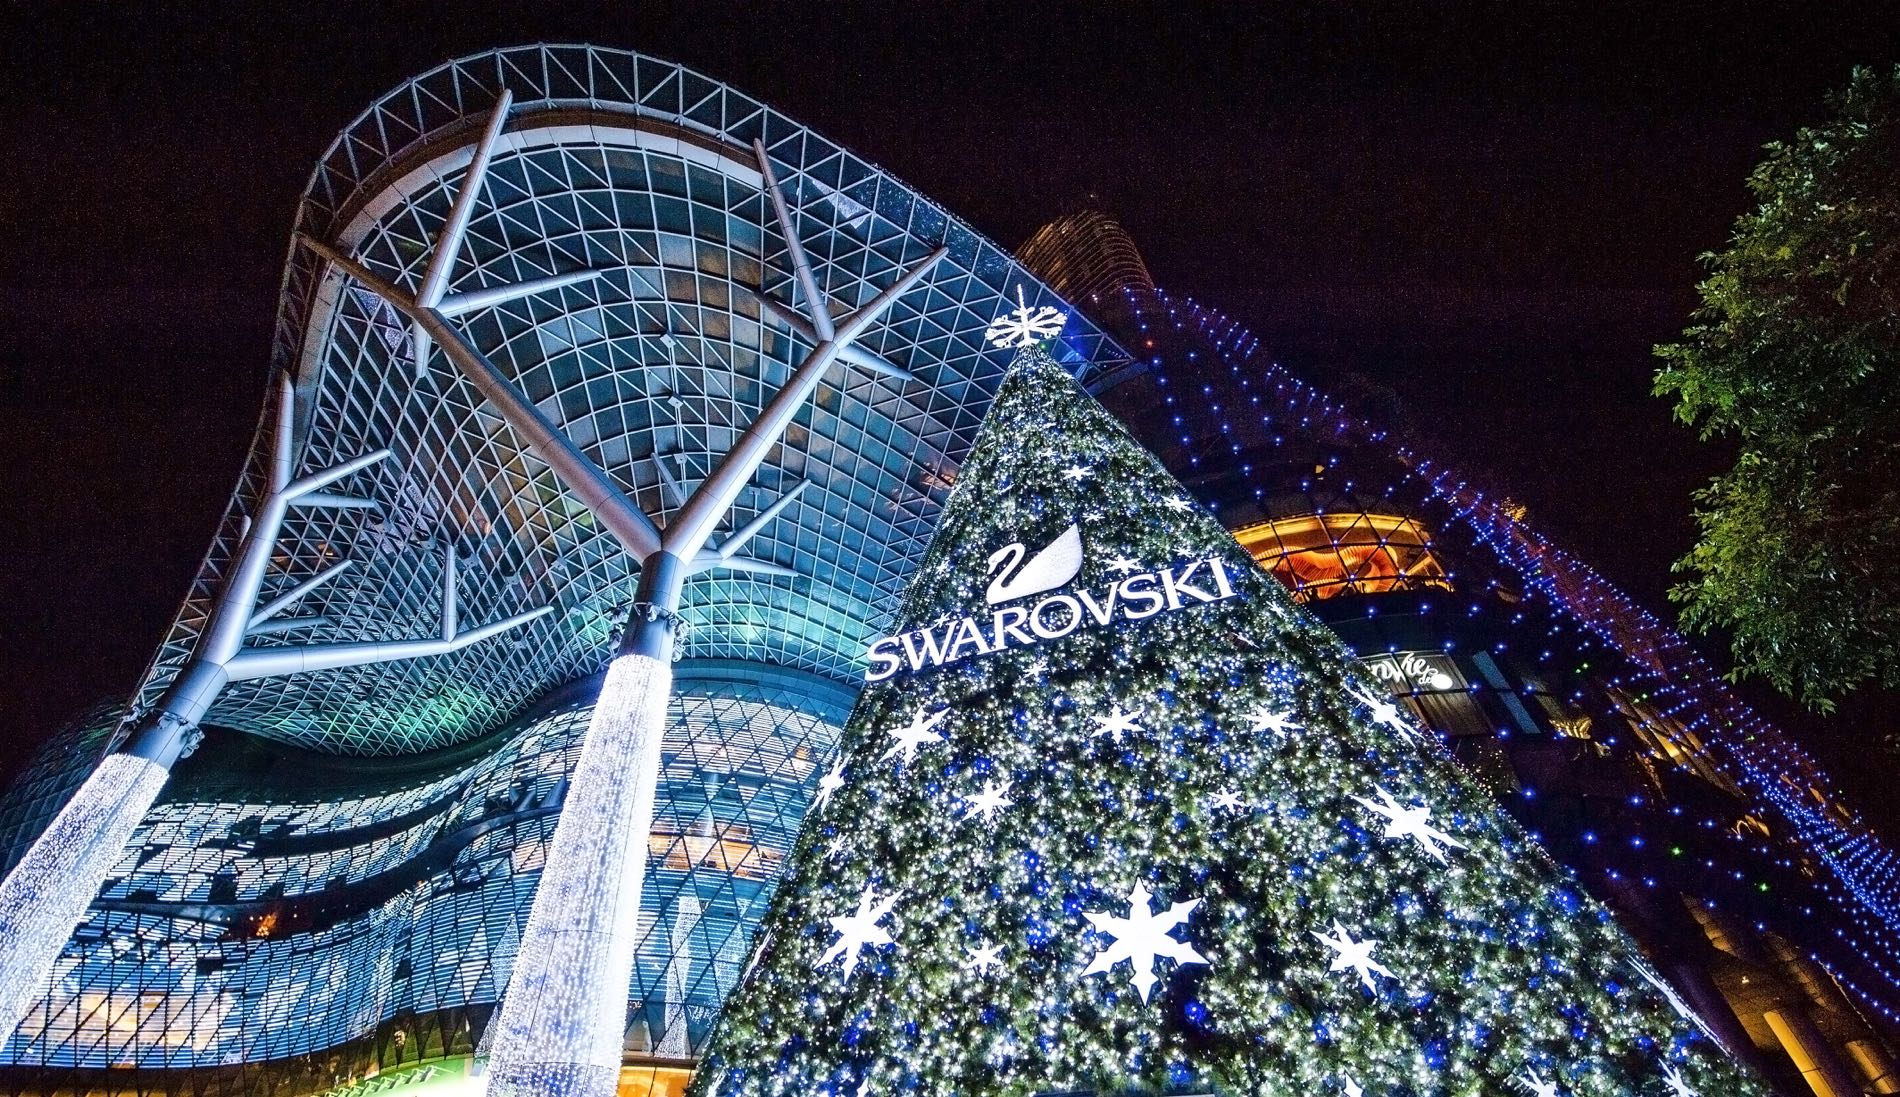 Diy Christmas Decorations Swarovski Inaugurates First Outdoor Christmas Tree In